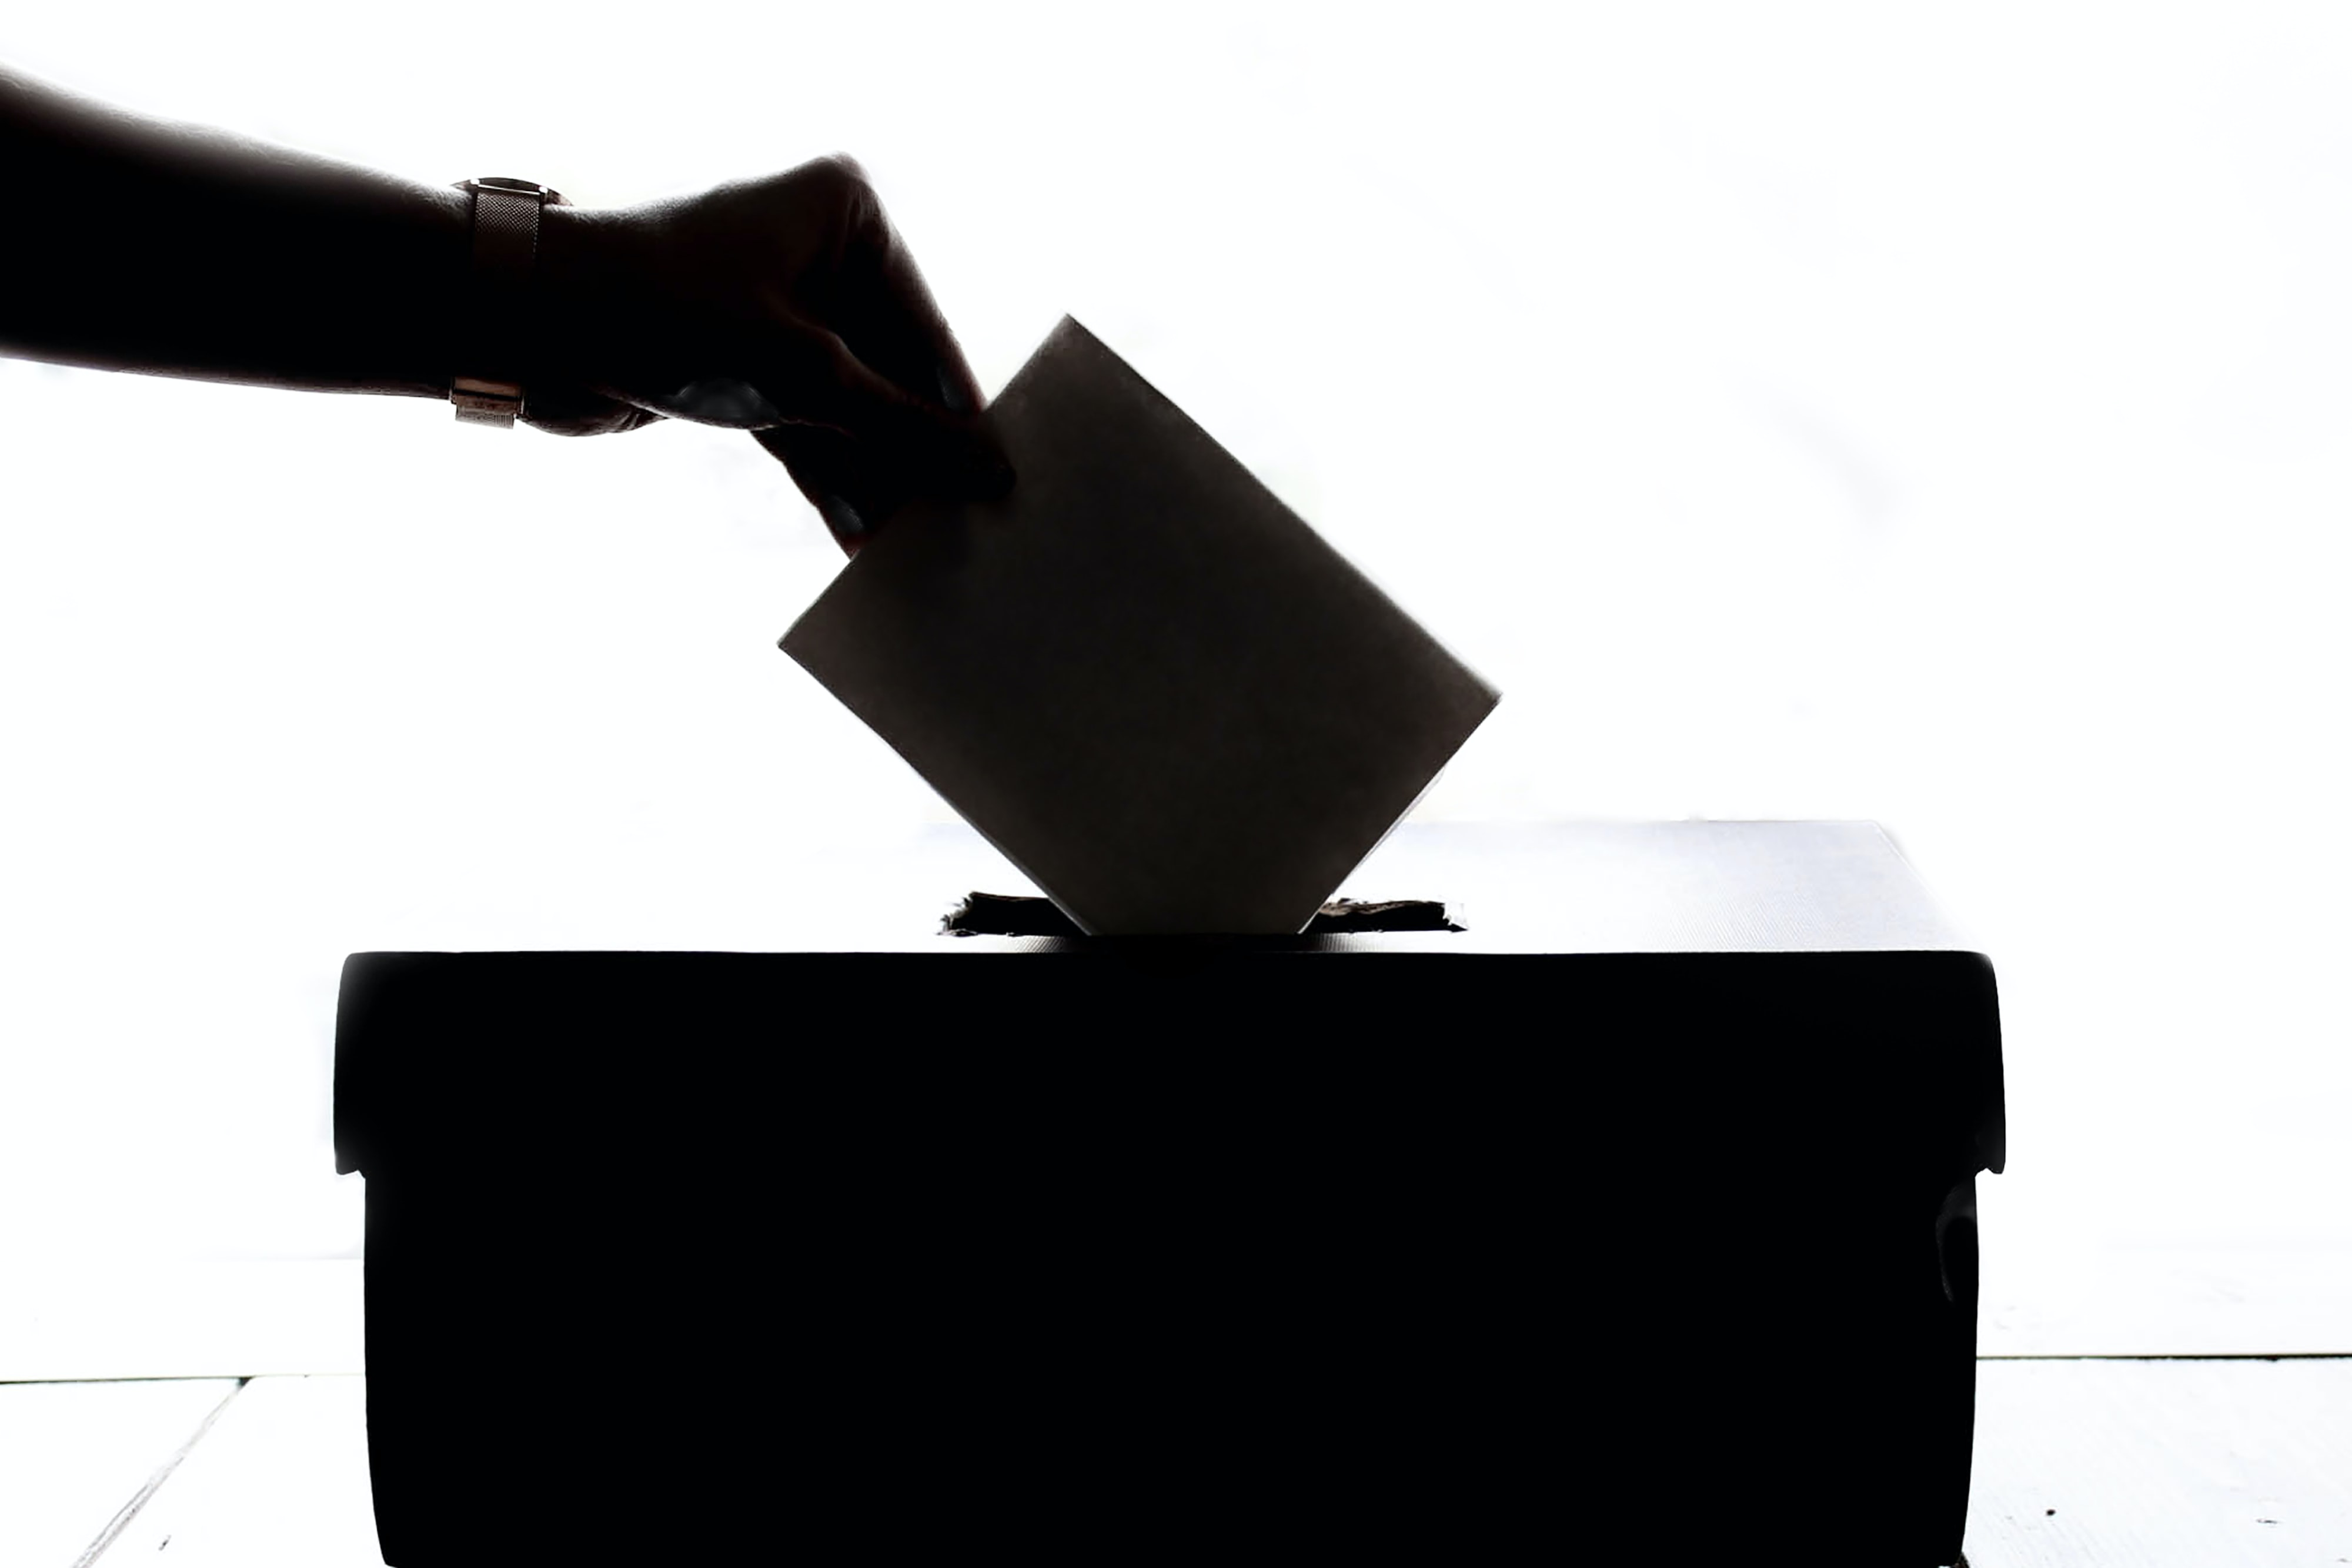 Black and white photo of someone placing a vote into a box